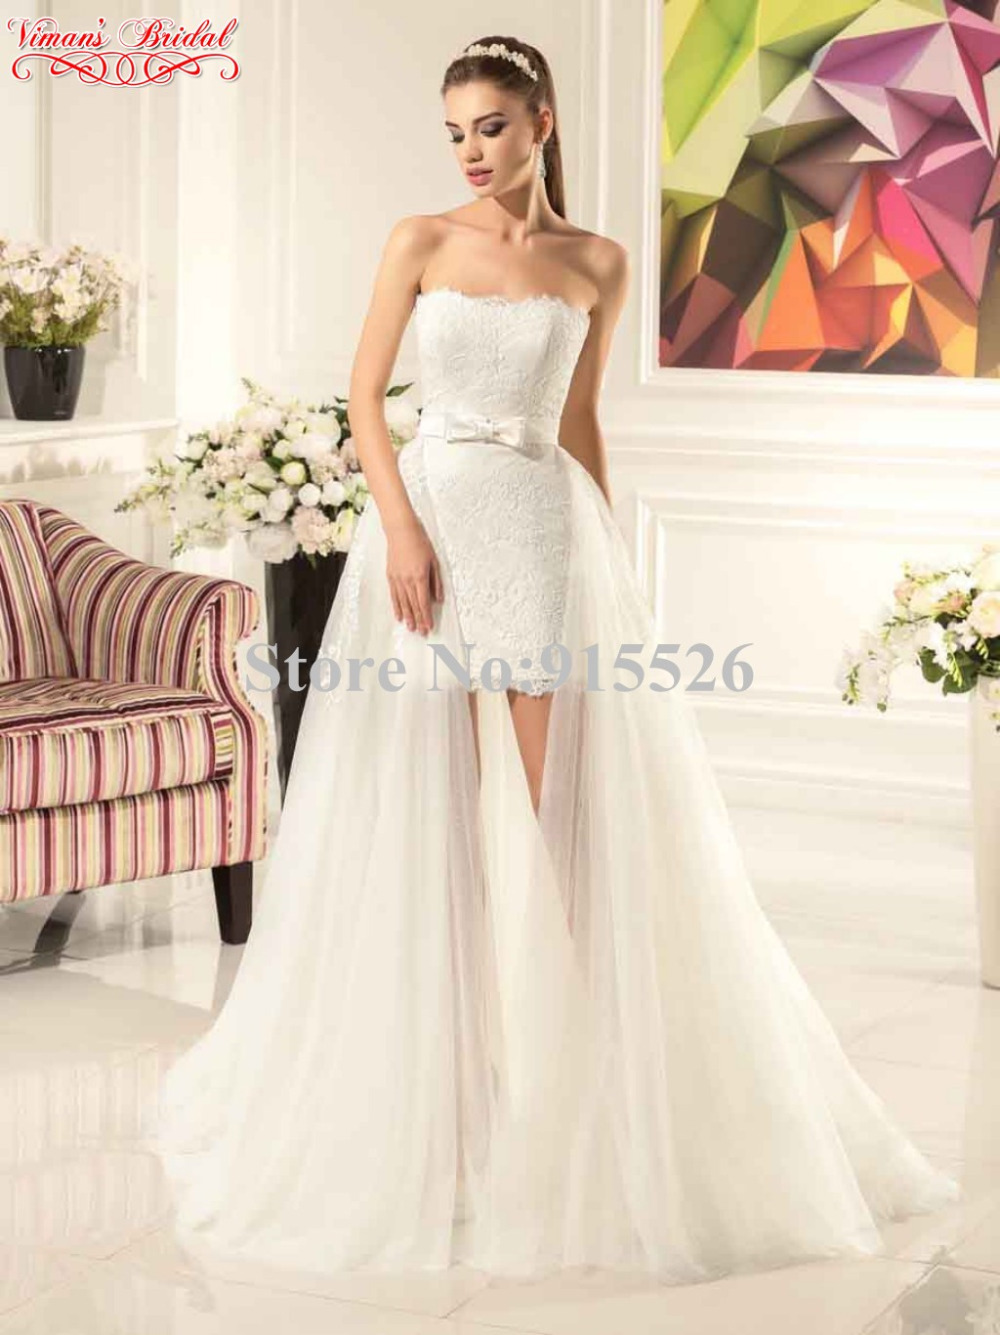 2017 Viman S Bridal White Lace Vestido Noiva Curto Liques Off The Shoulder Mini Wedding Dress With Train Free Shipping Ax27 In Dresses From